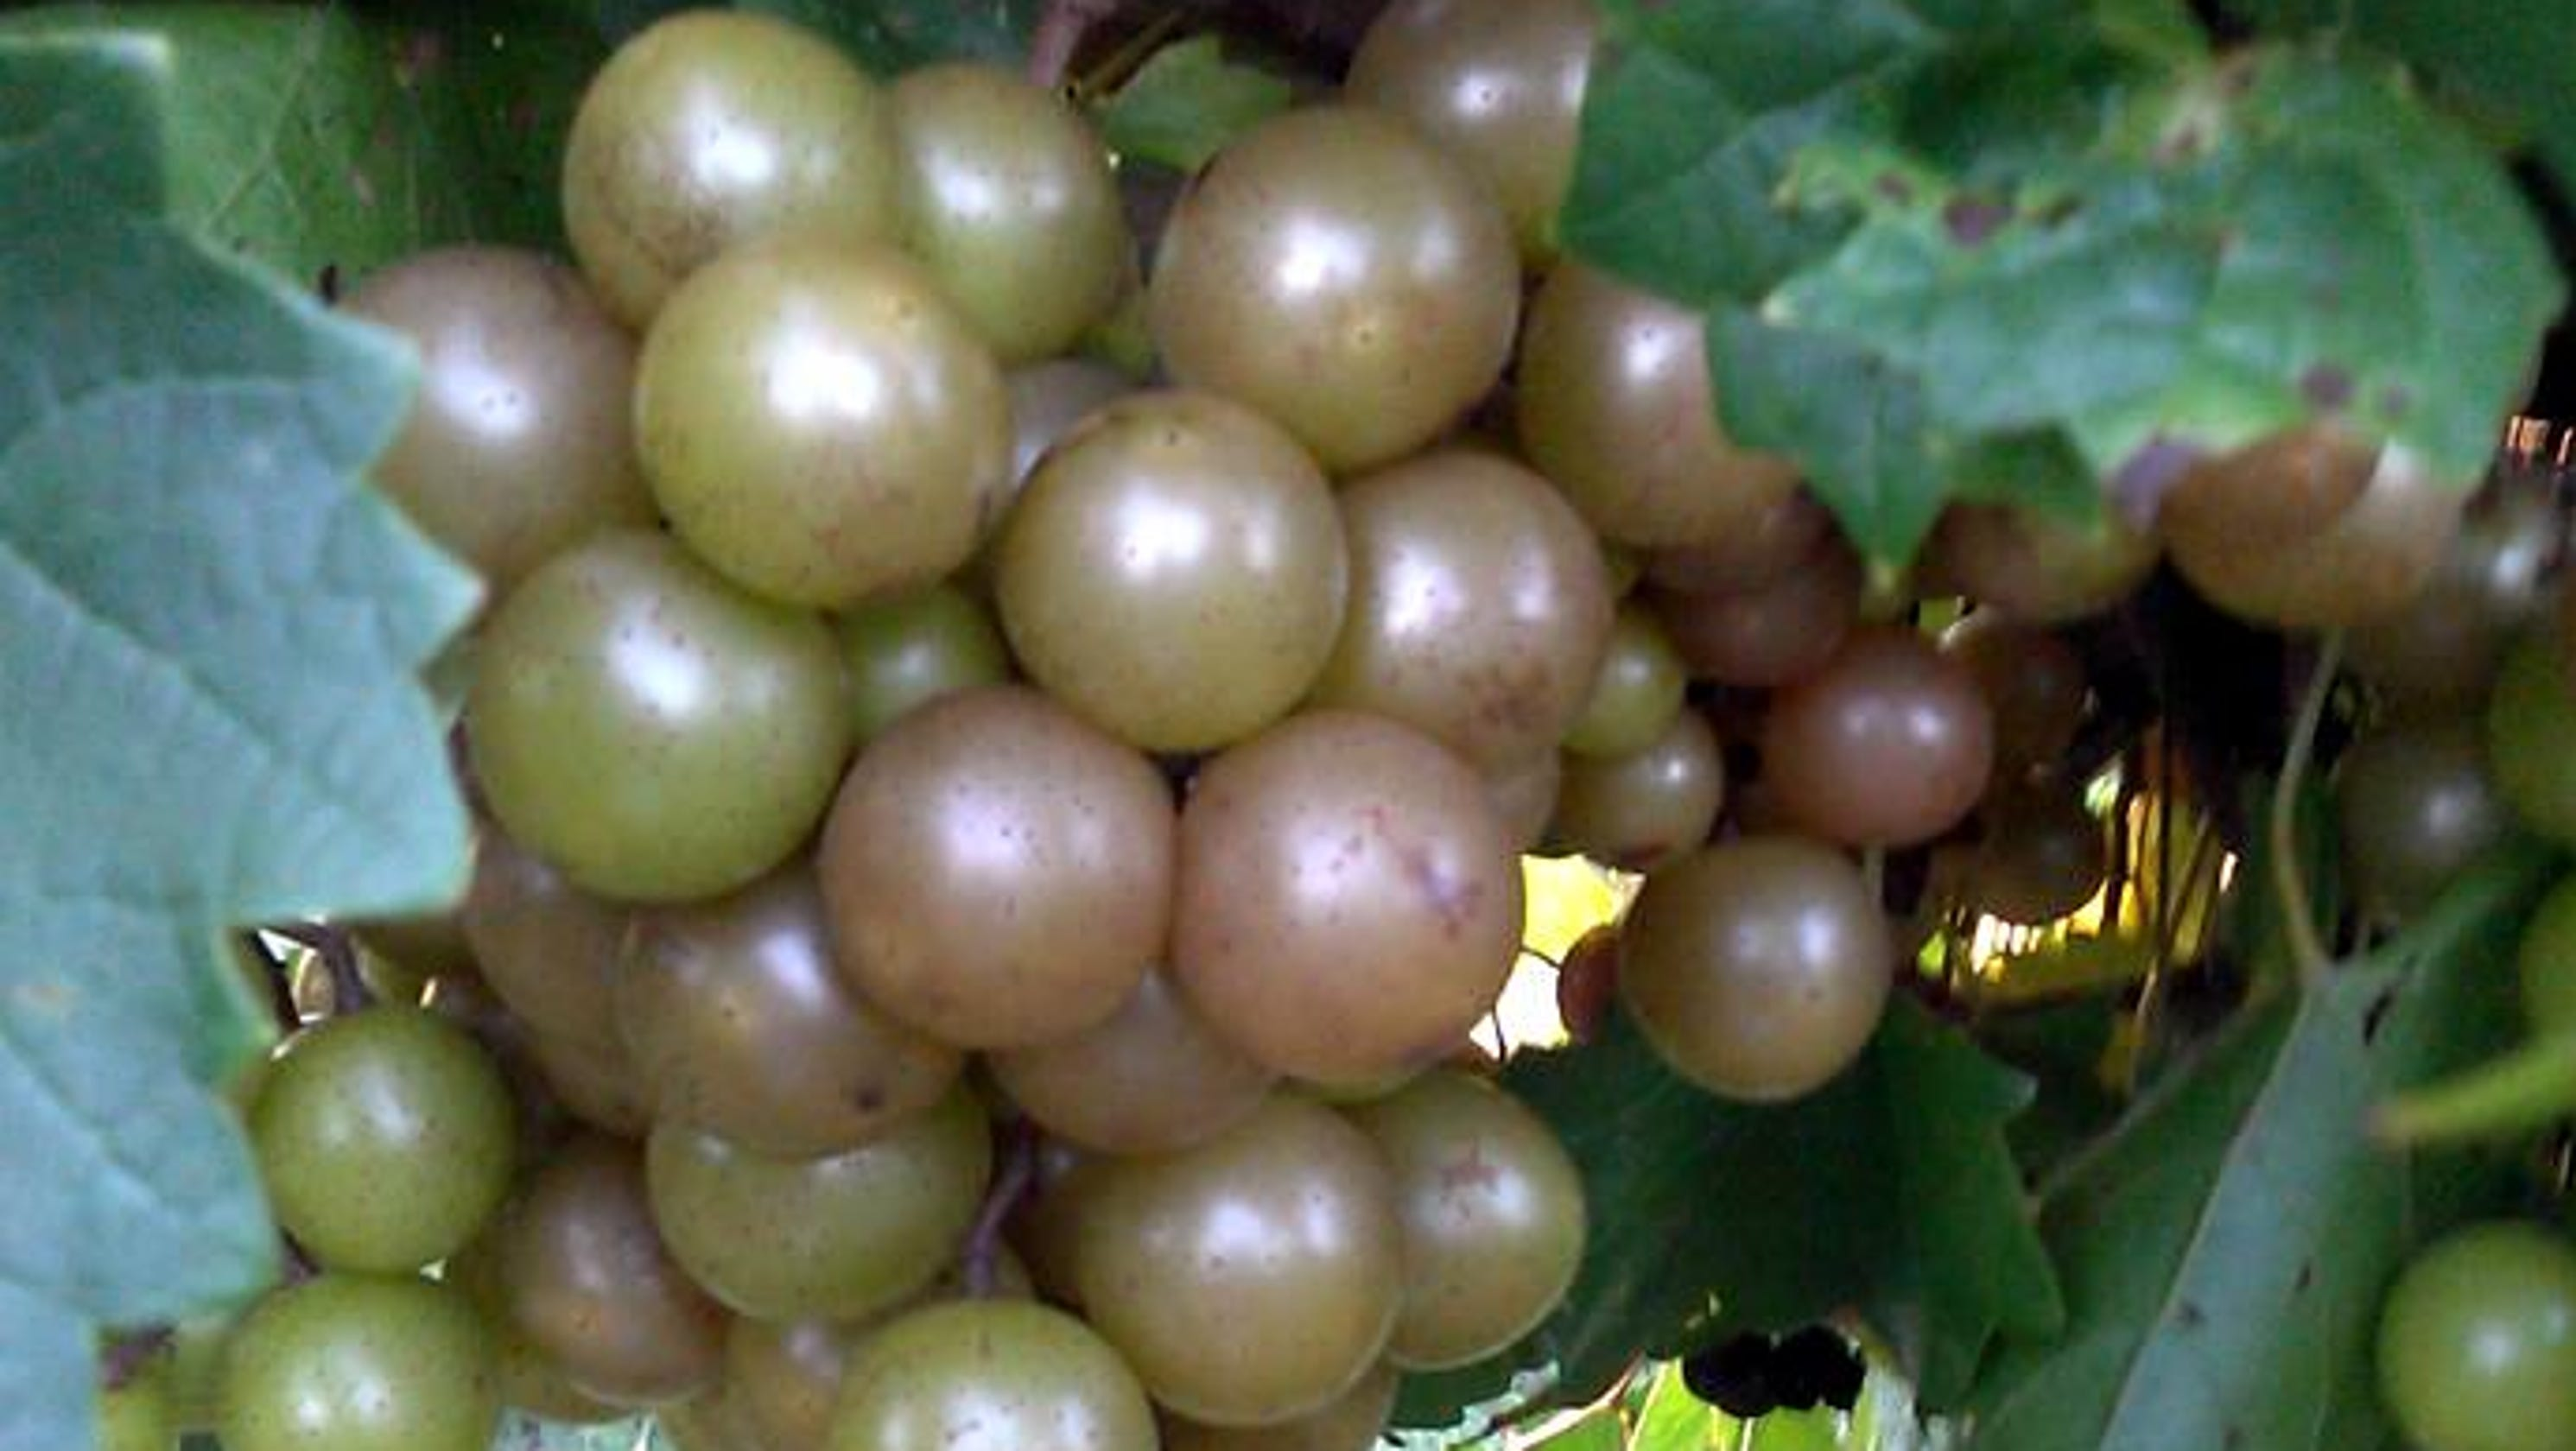 Muscadine eating protocol lacks propriety